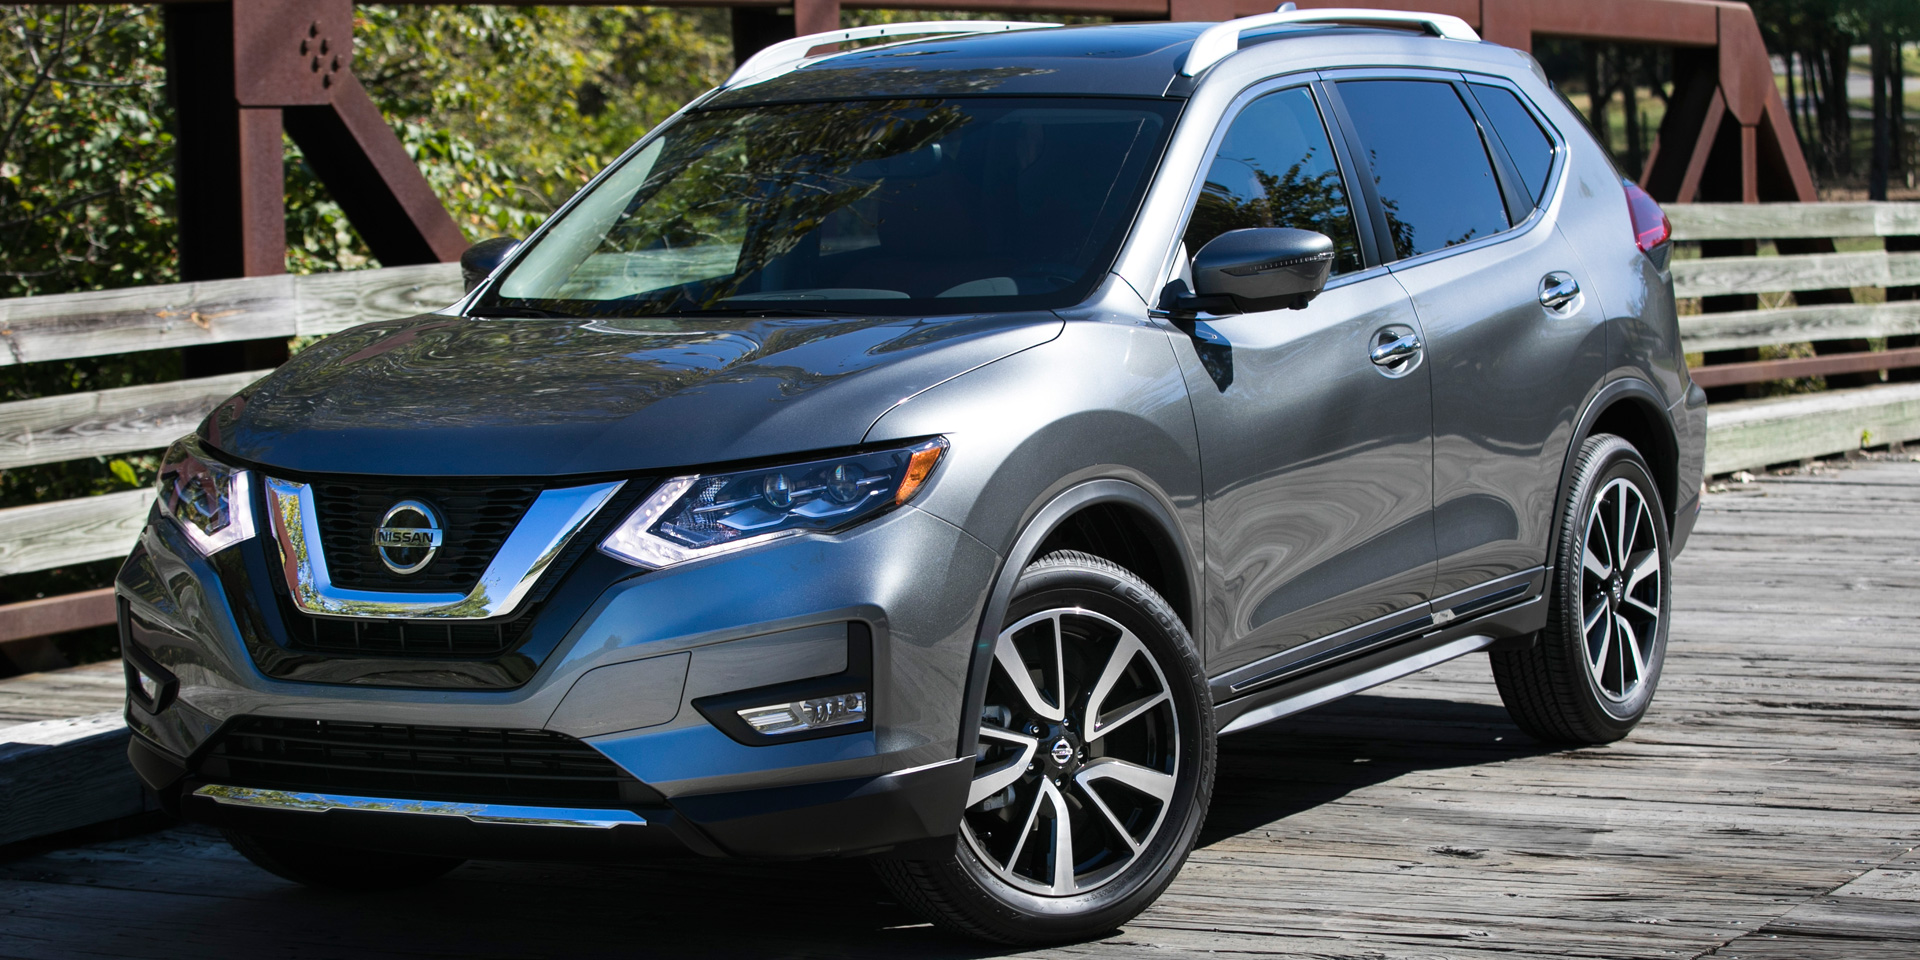 2018 Nissan Rogue Vehicles On Display Chicago Auto